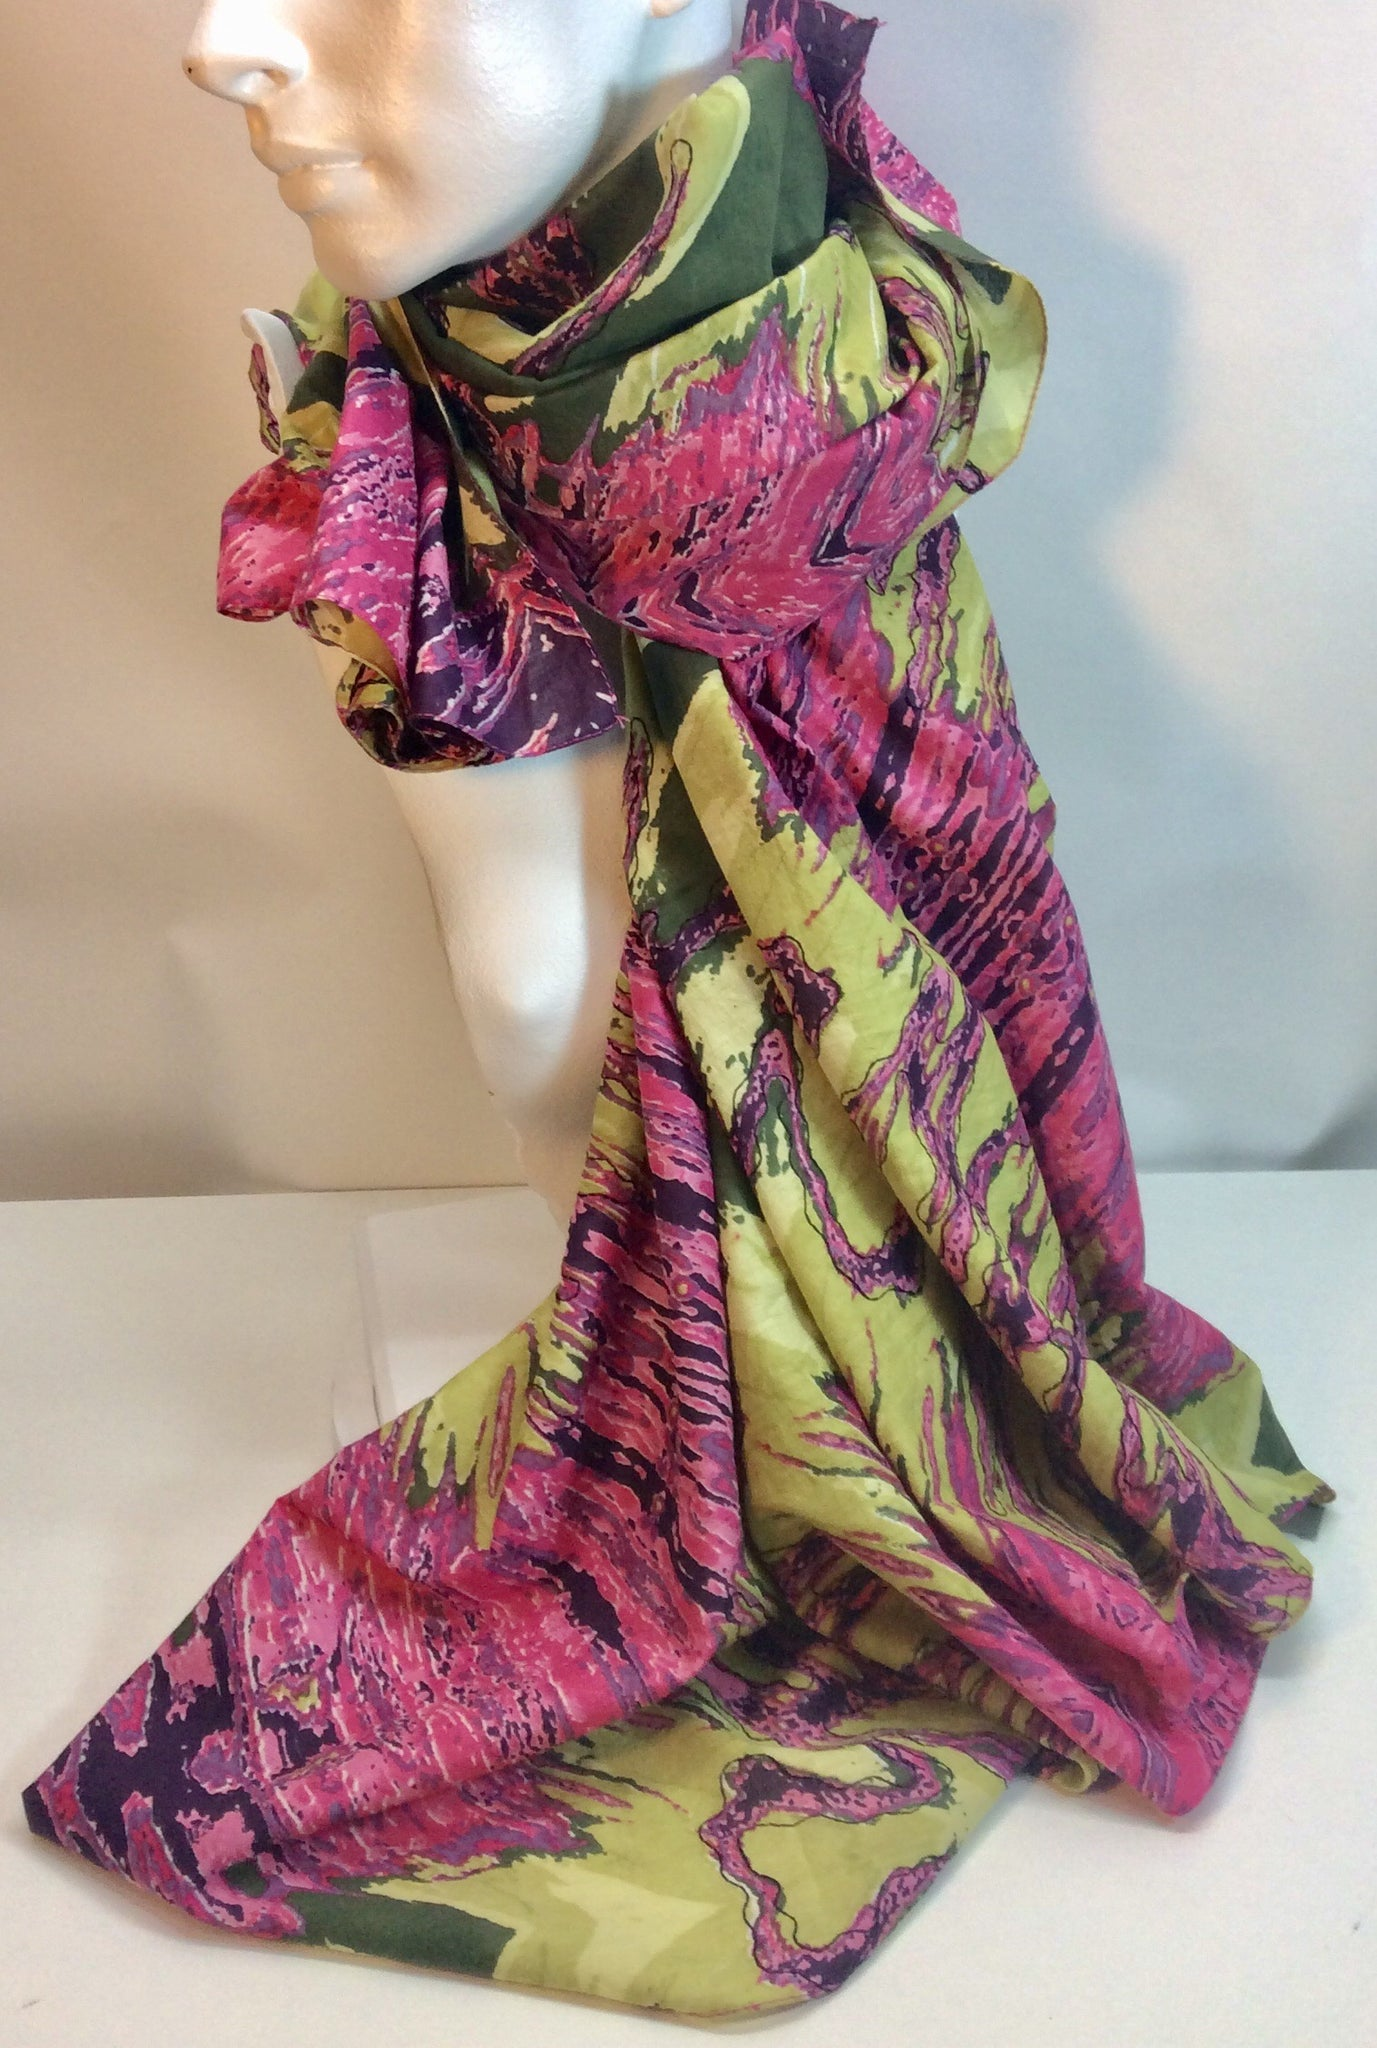 Pink and green patterned cotton scarf